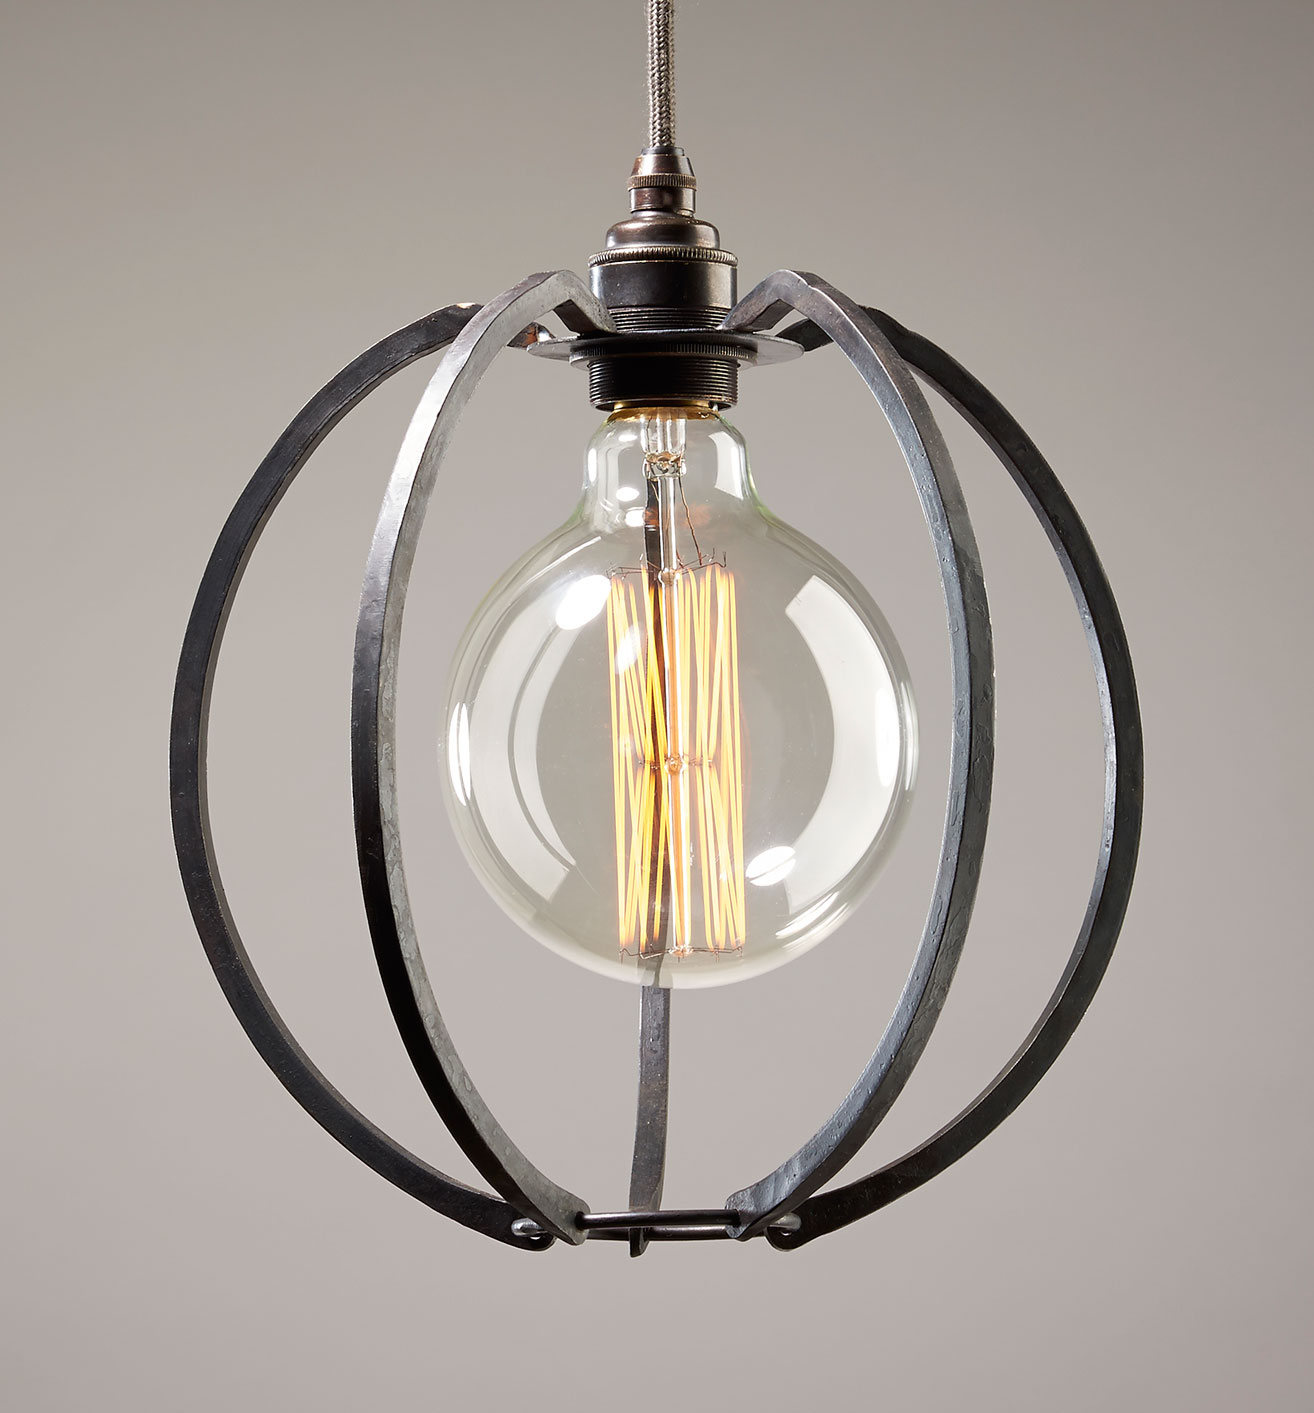 cage lighting. Farrier\u0027s Cage Globe - Iron Pendant Light, Round Lighting A